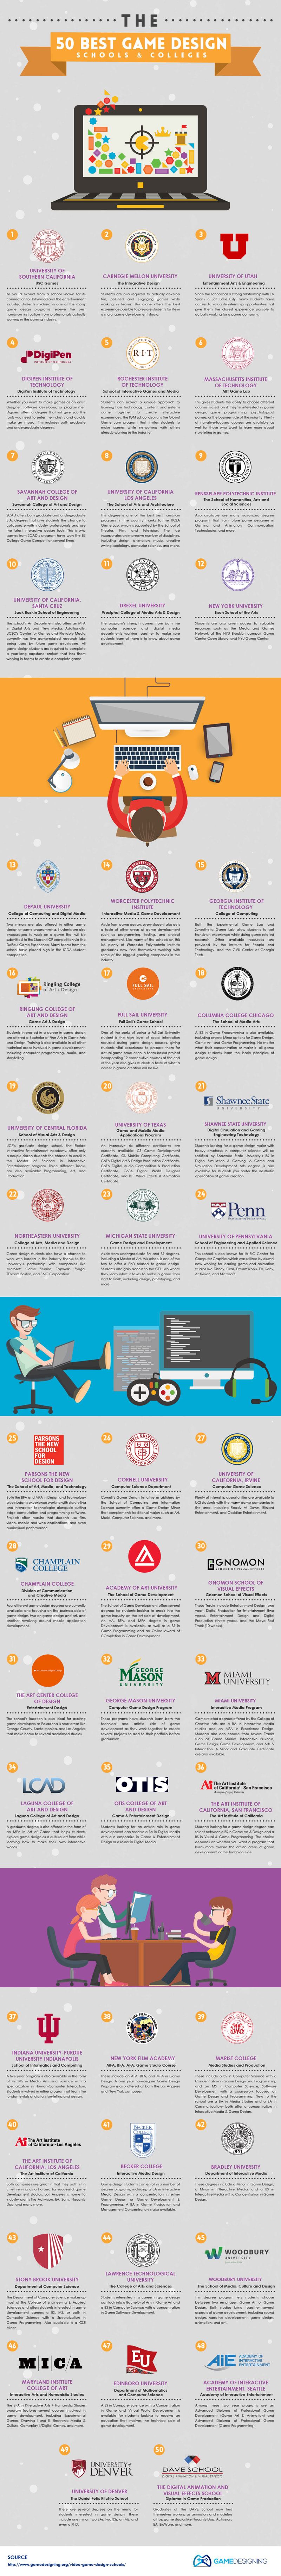 Top 50 Colleges For Game Design Infographic